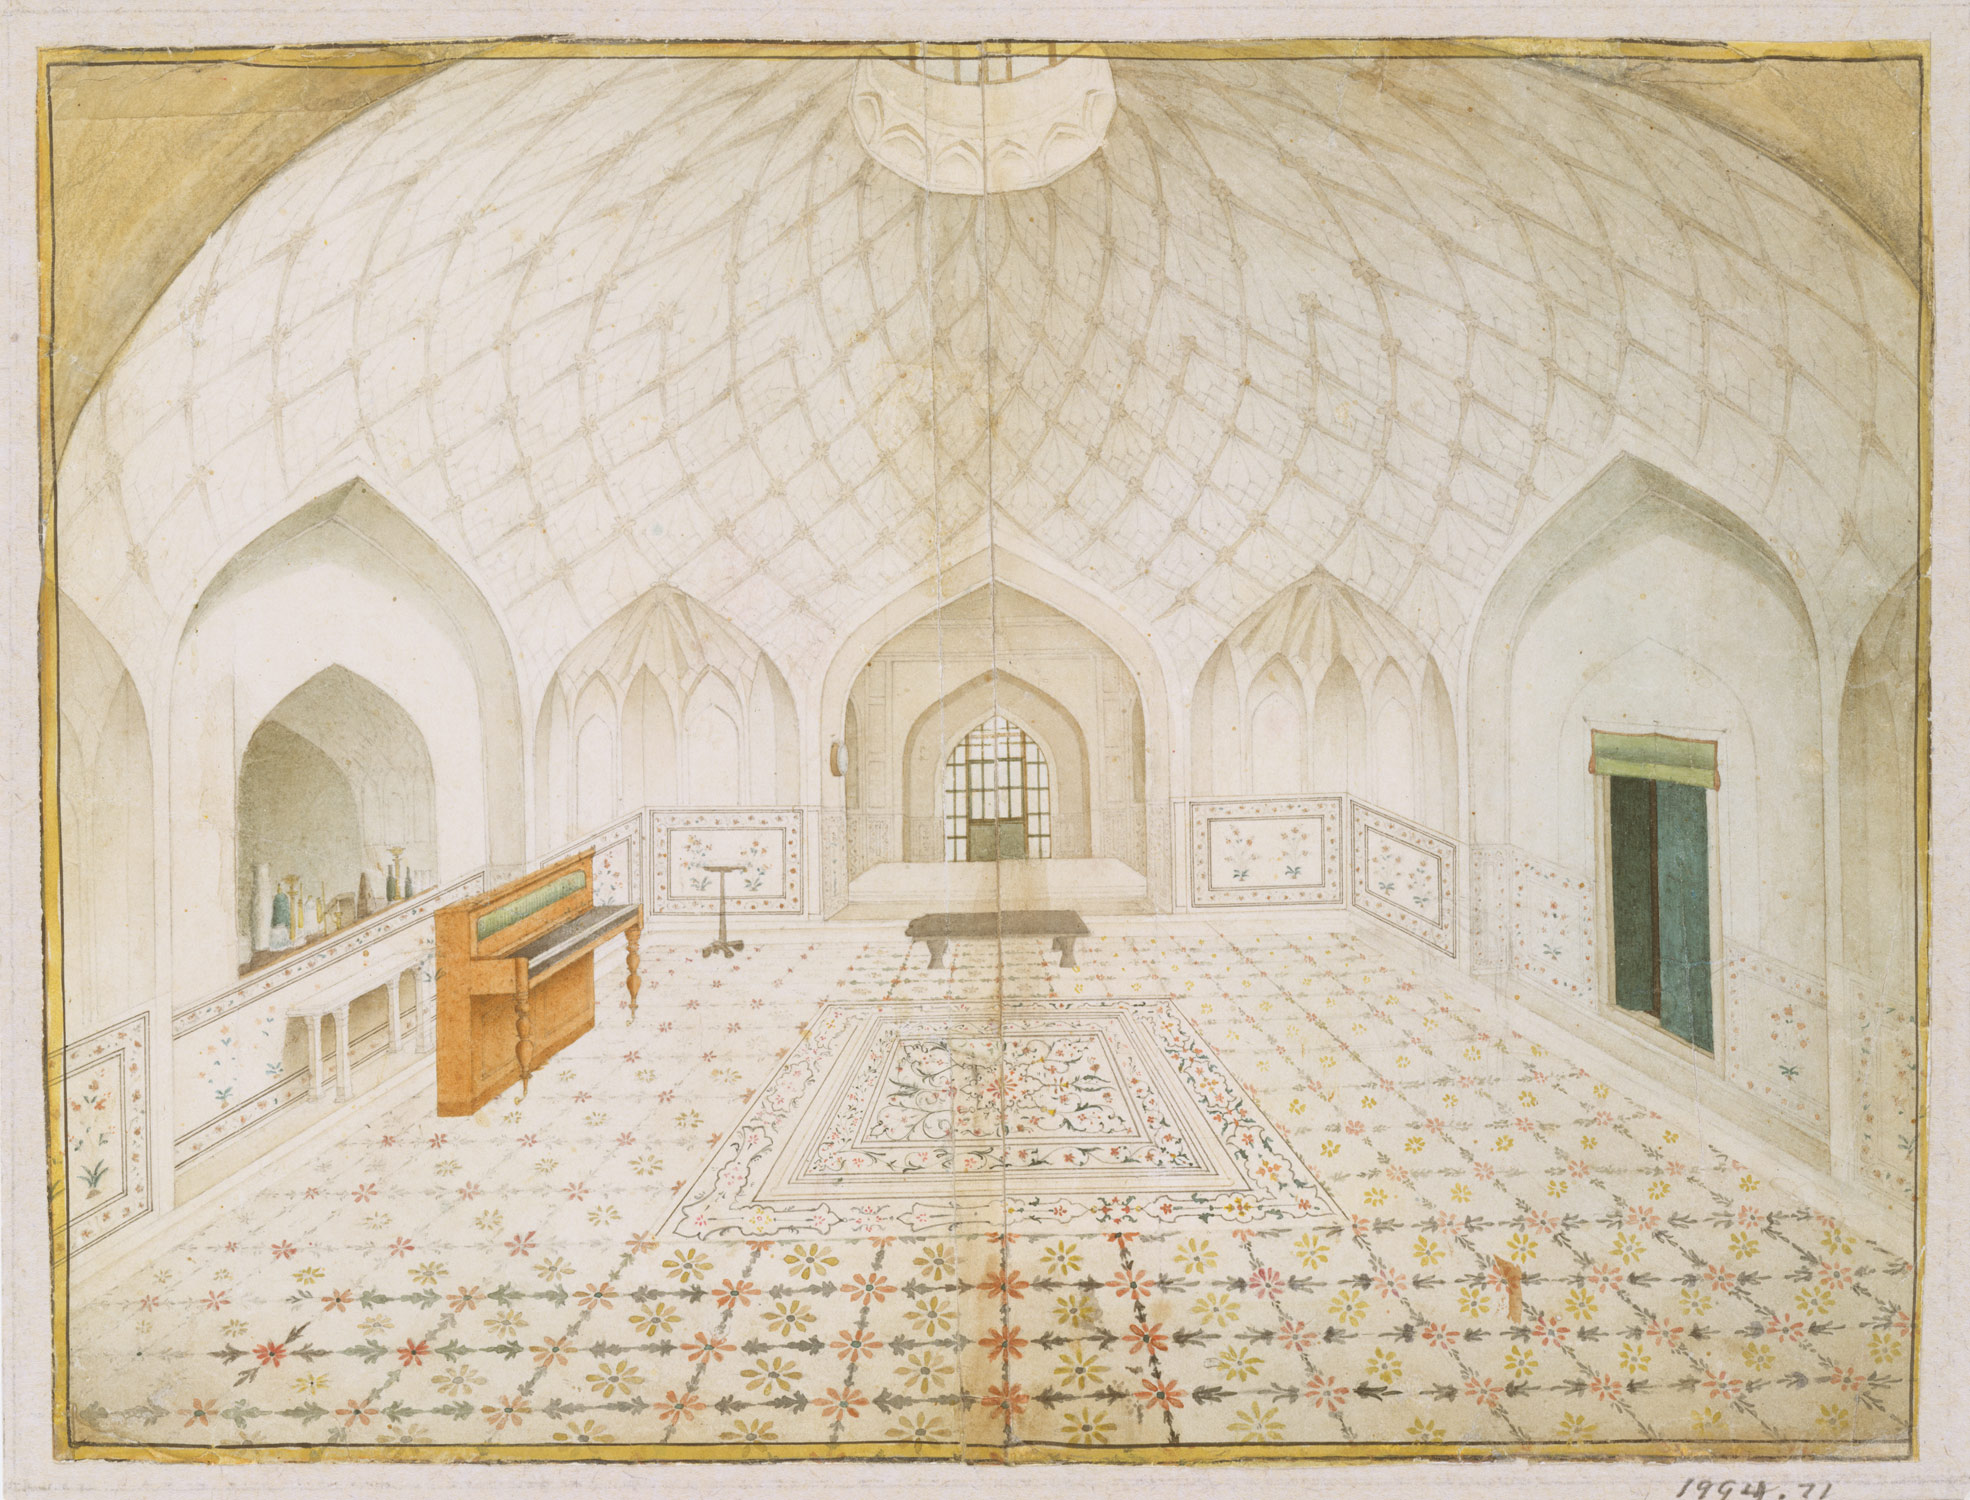 Interior of the Hammam at the Red Fort, Delhi, Furnished According to English Taste